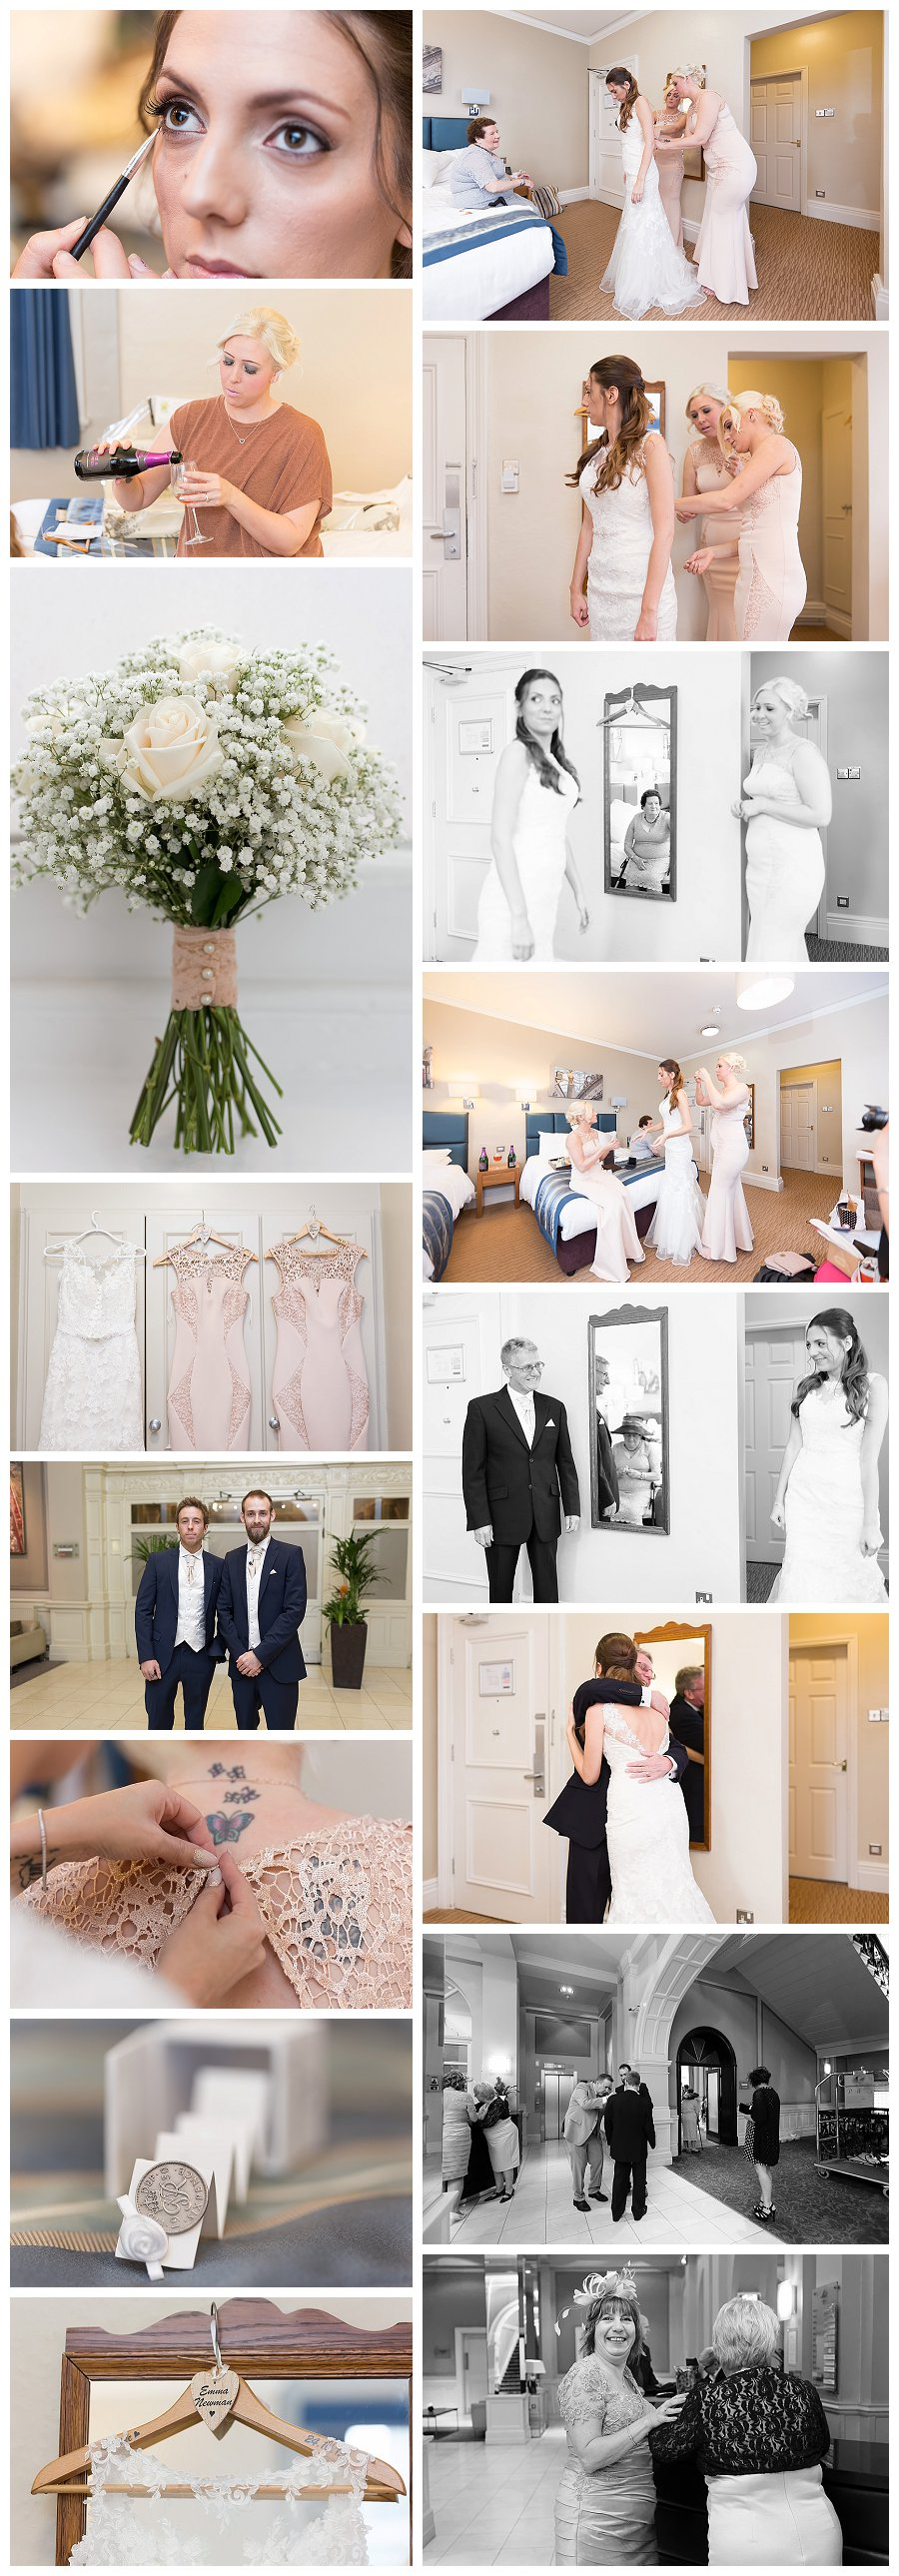 Wedding Photography Met Hotel Leeds, Metropole hotel weddings, bridal suite metropole hotel